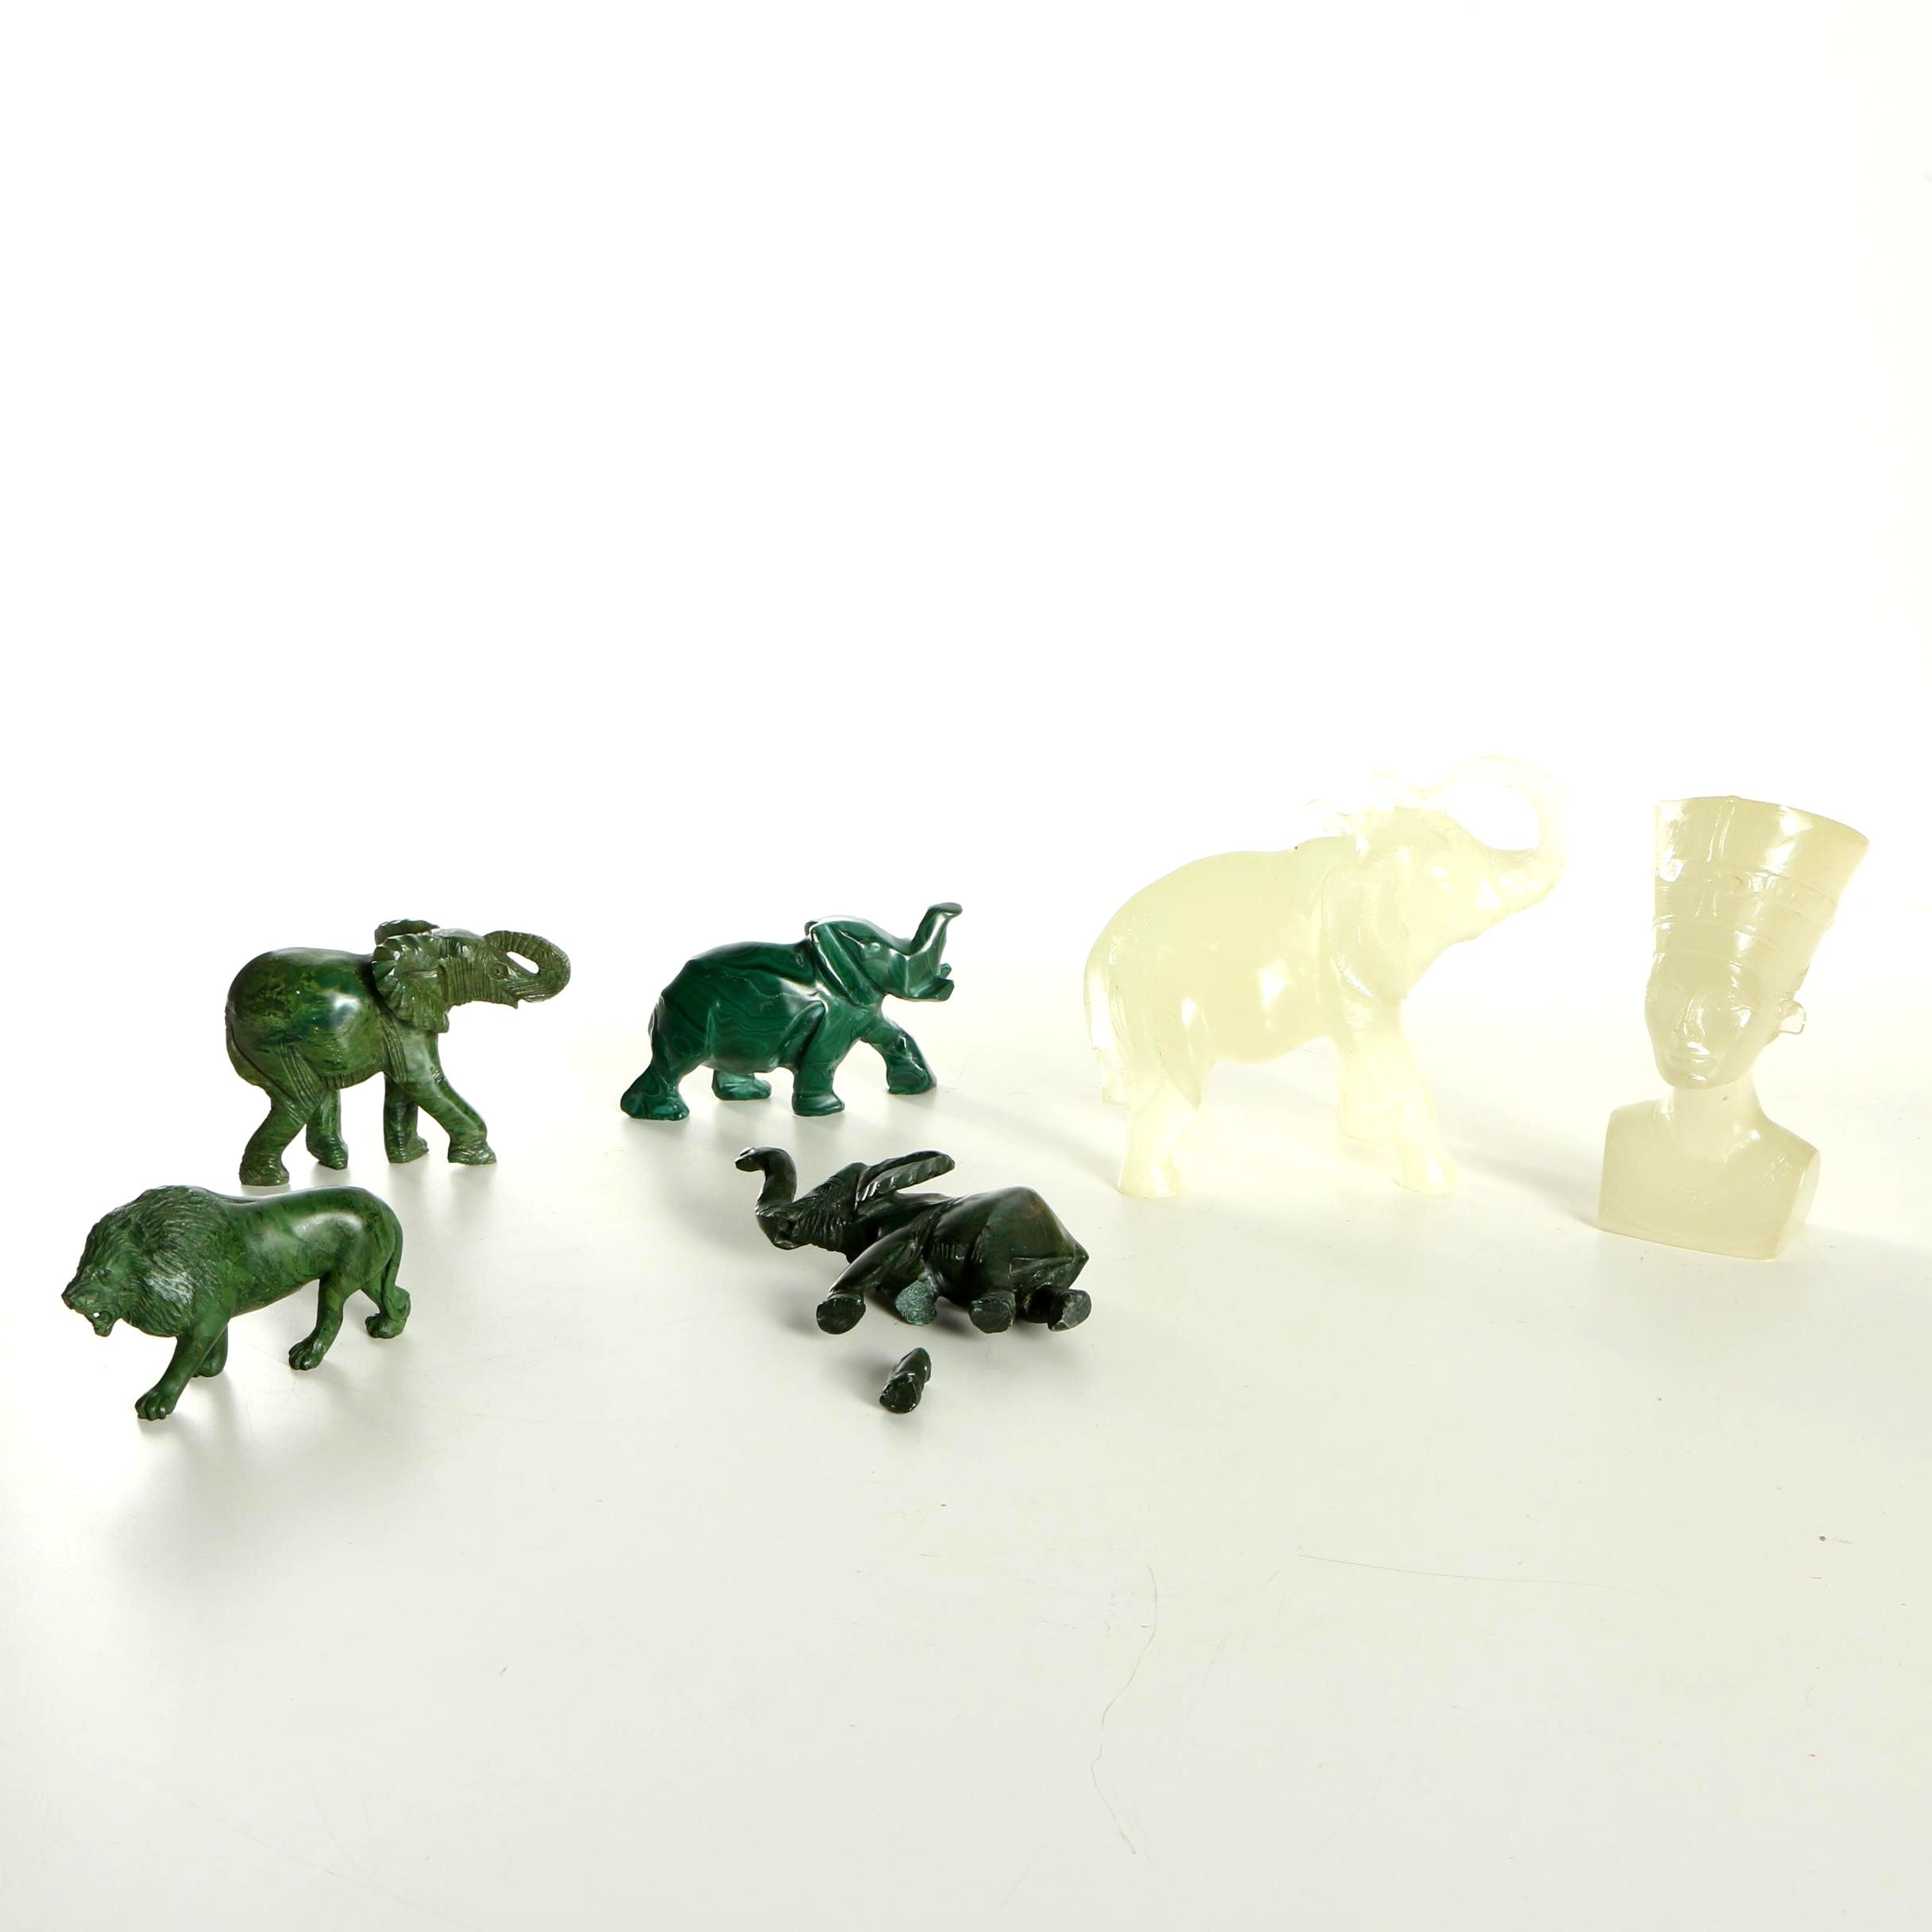 Carved Stone and Resin Figurines including Serpentine and Malachite